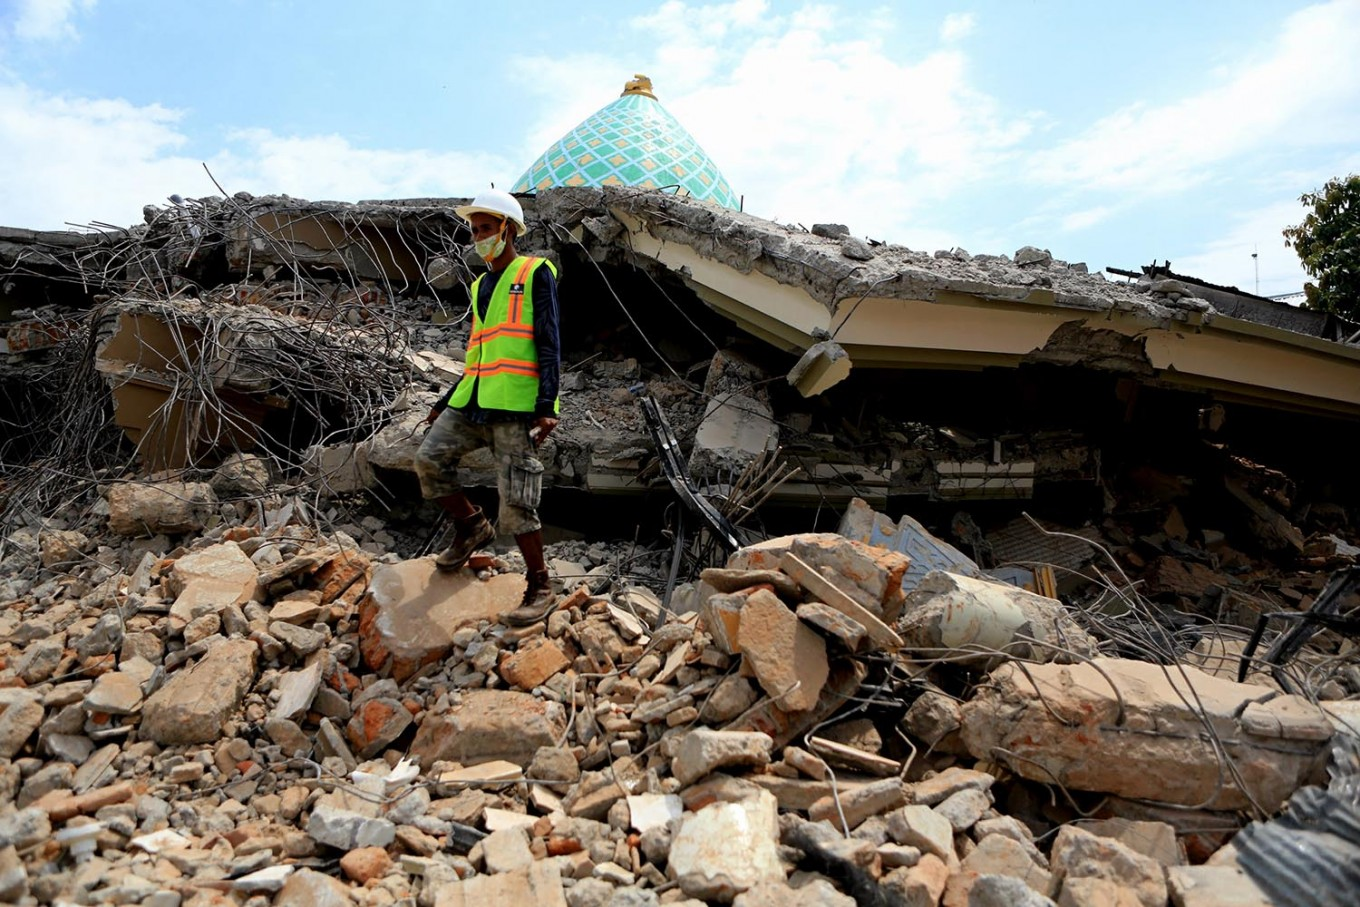 Fresh Lombok quake a new mainshock, says govt